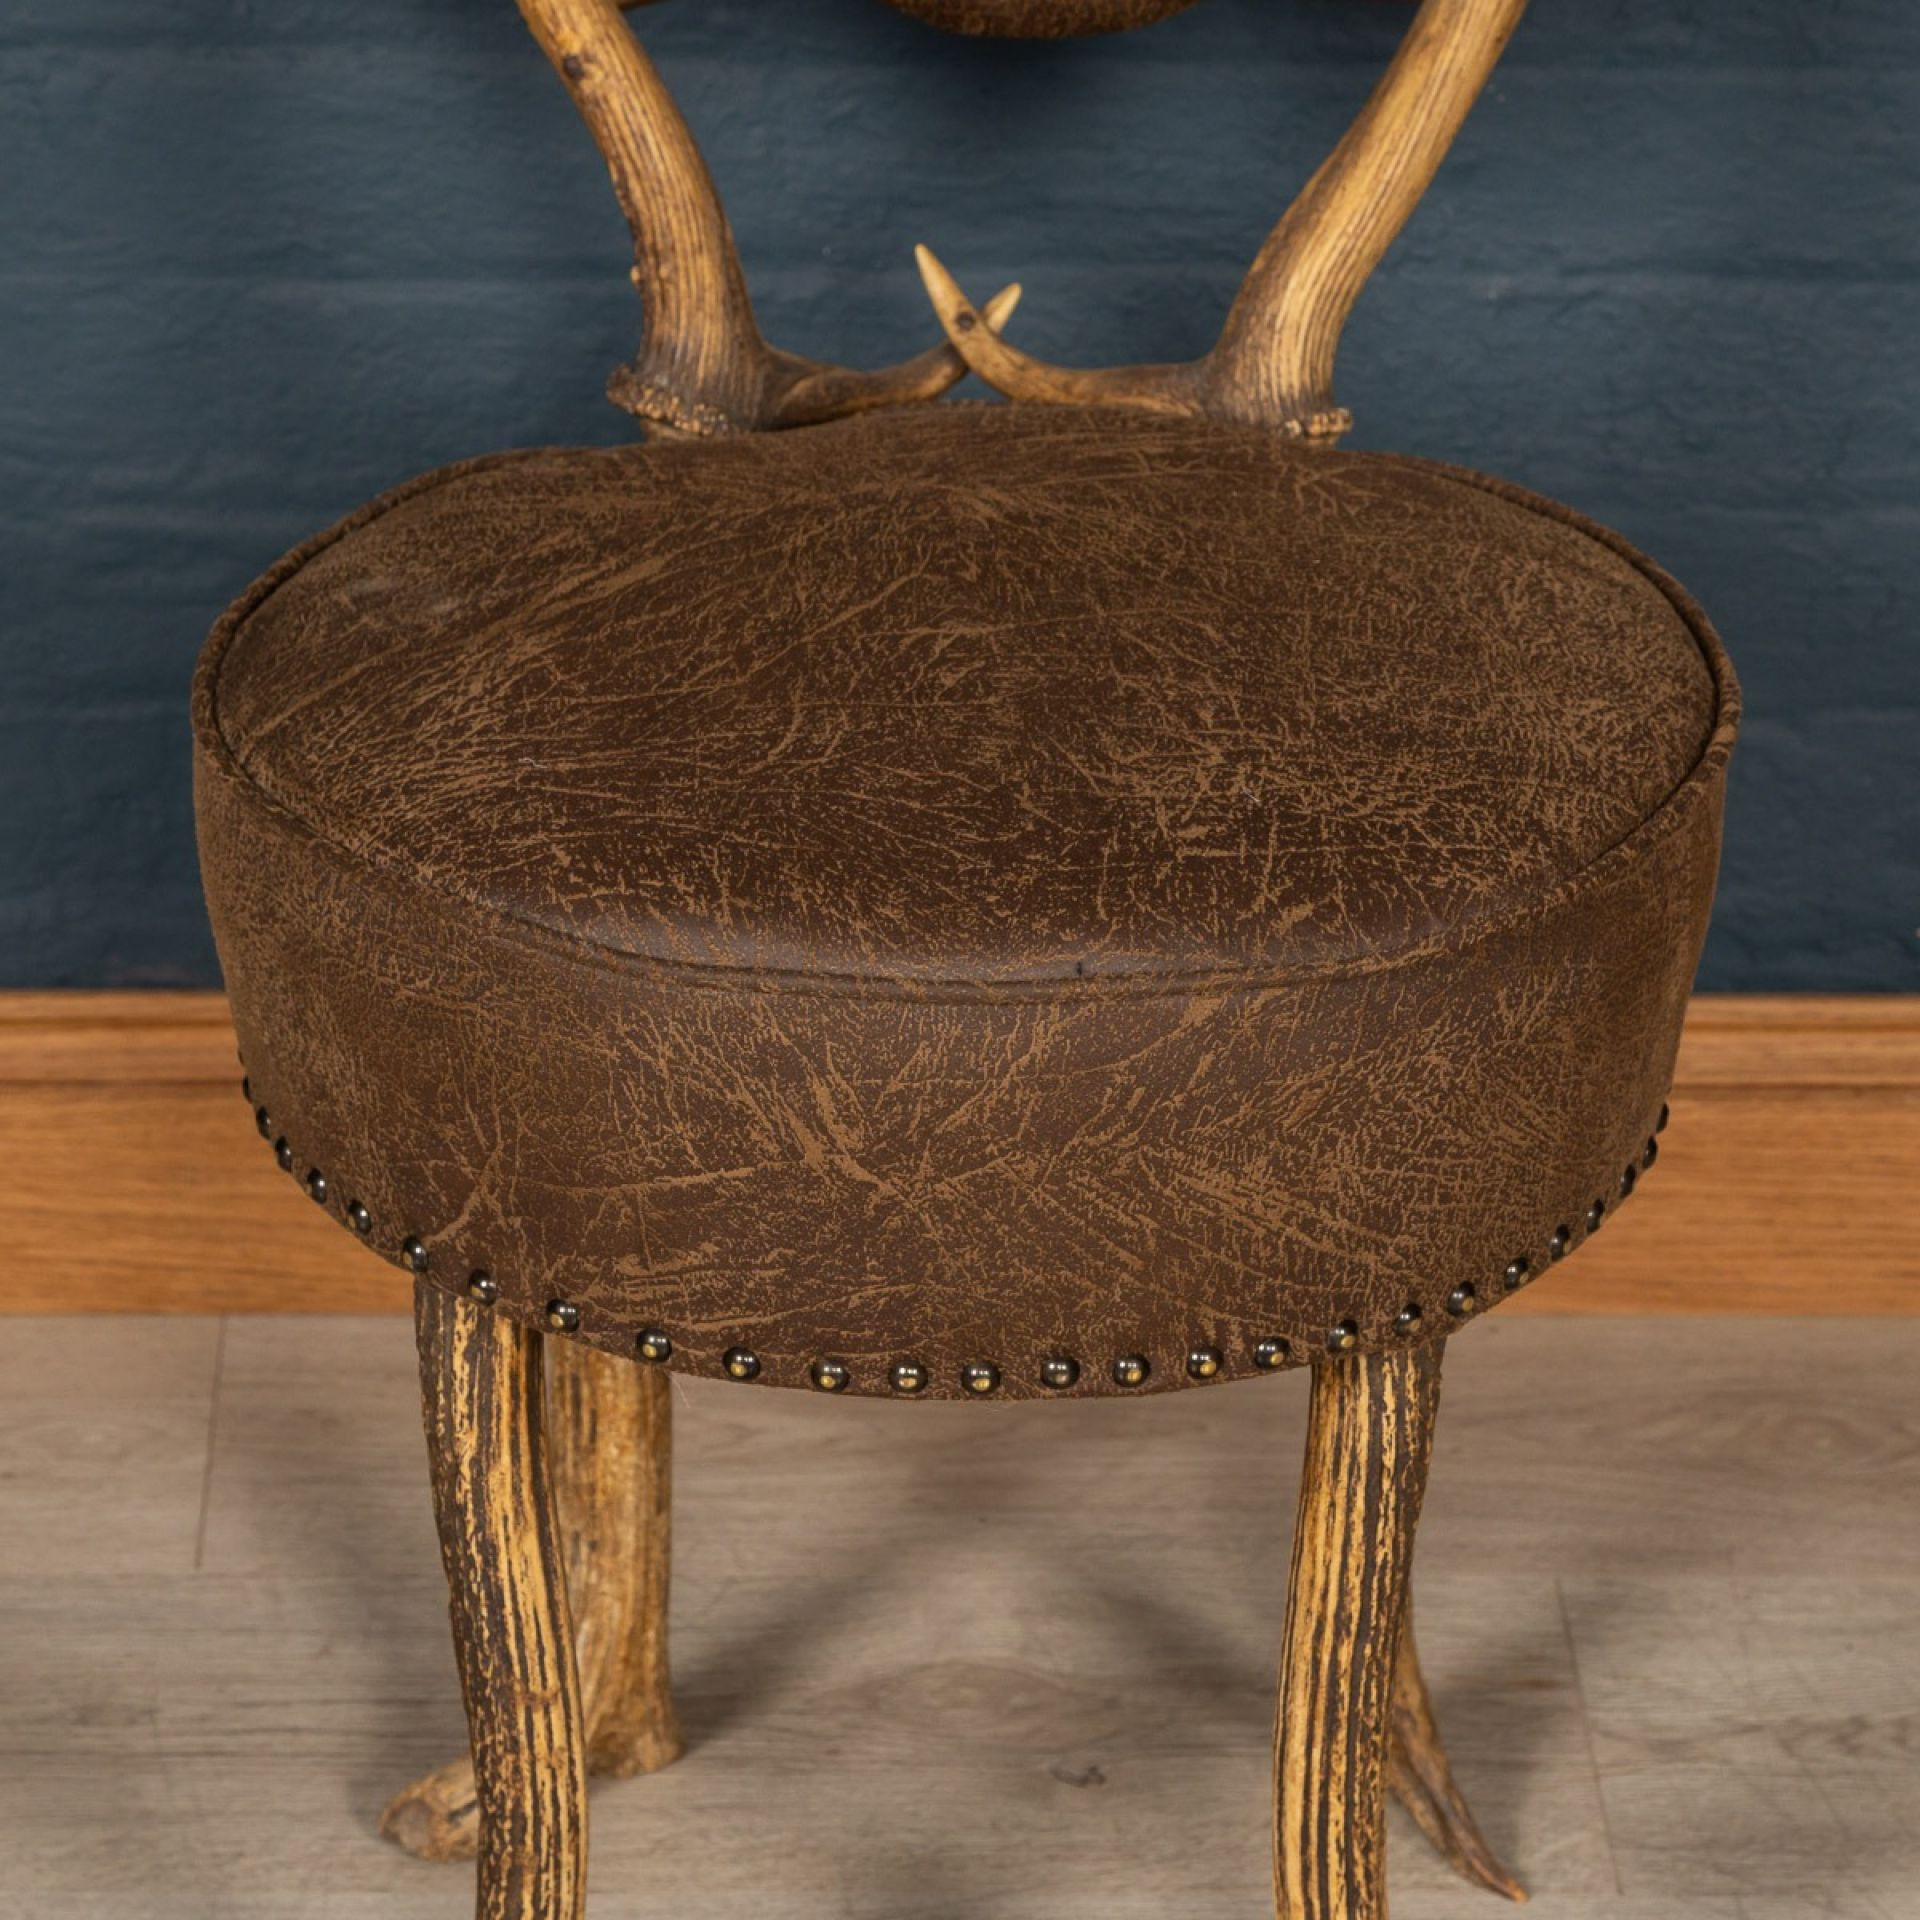 ANTIQUE 19thC GERMAN PAIR OF HALL ANTLER HORN CHAIRS, BLACK FOREST c.1880